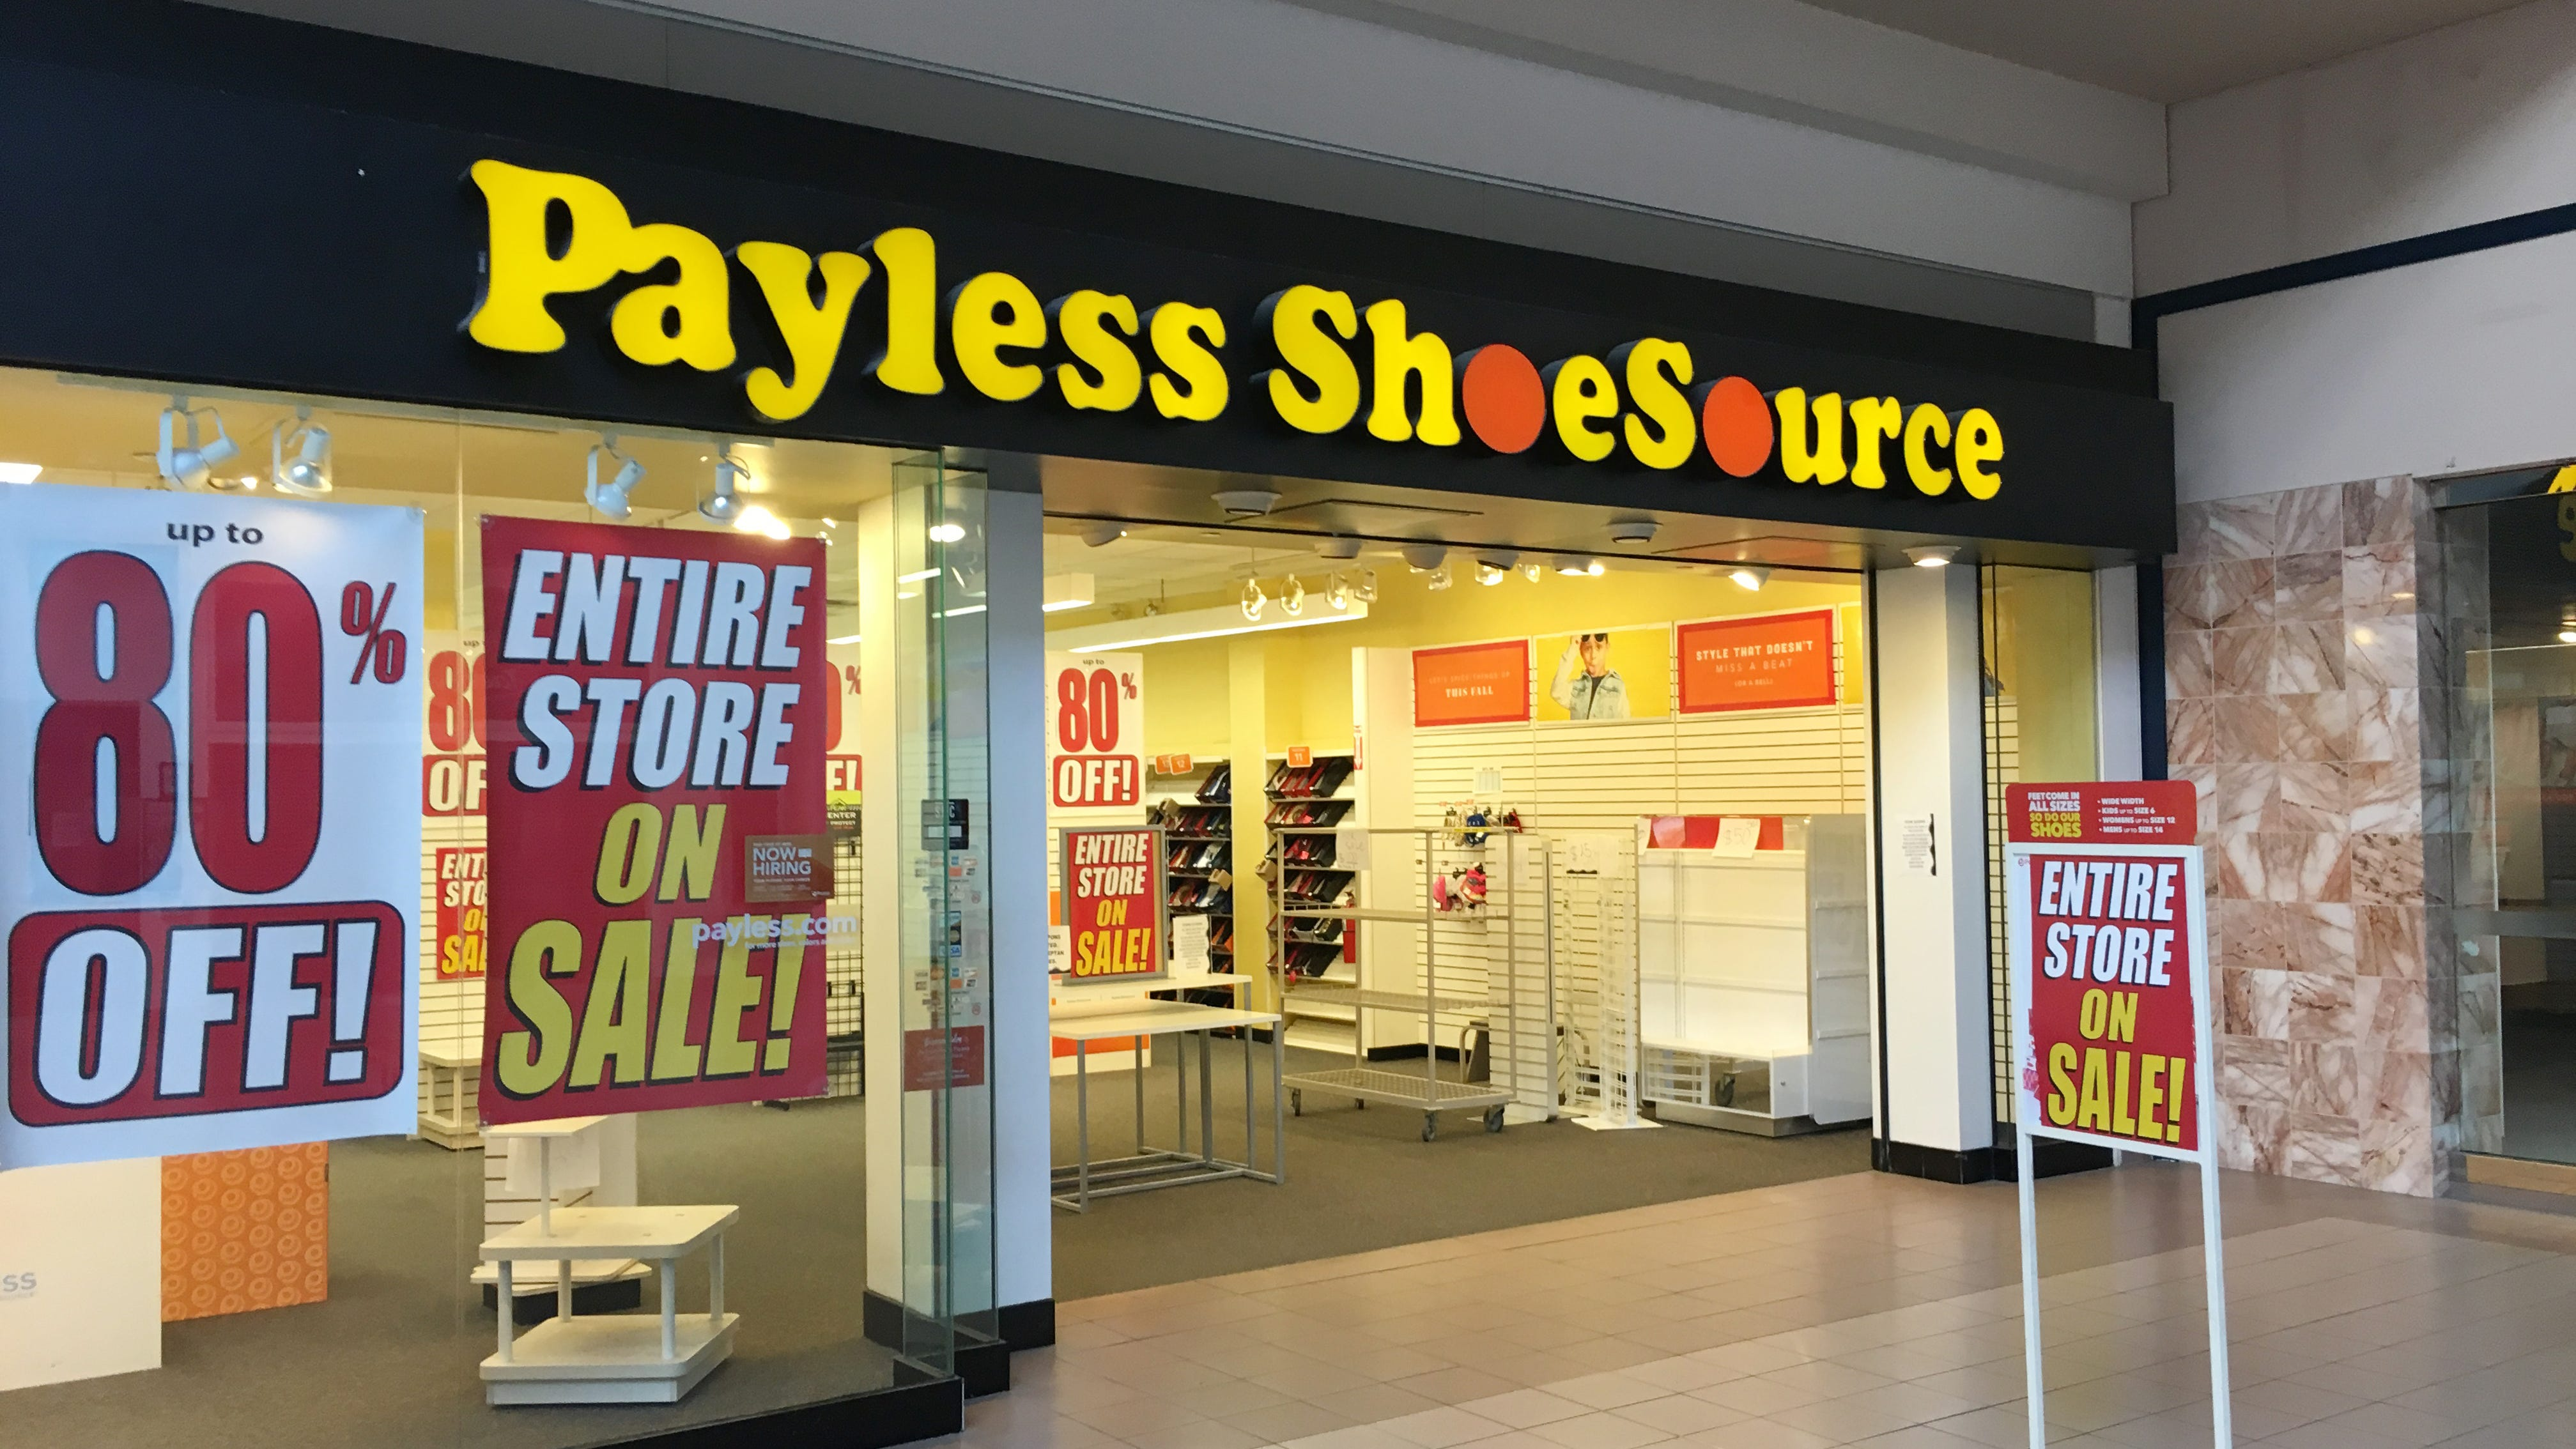 The Payless Shoe Source store is Midland Mall is going out of business